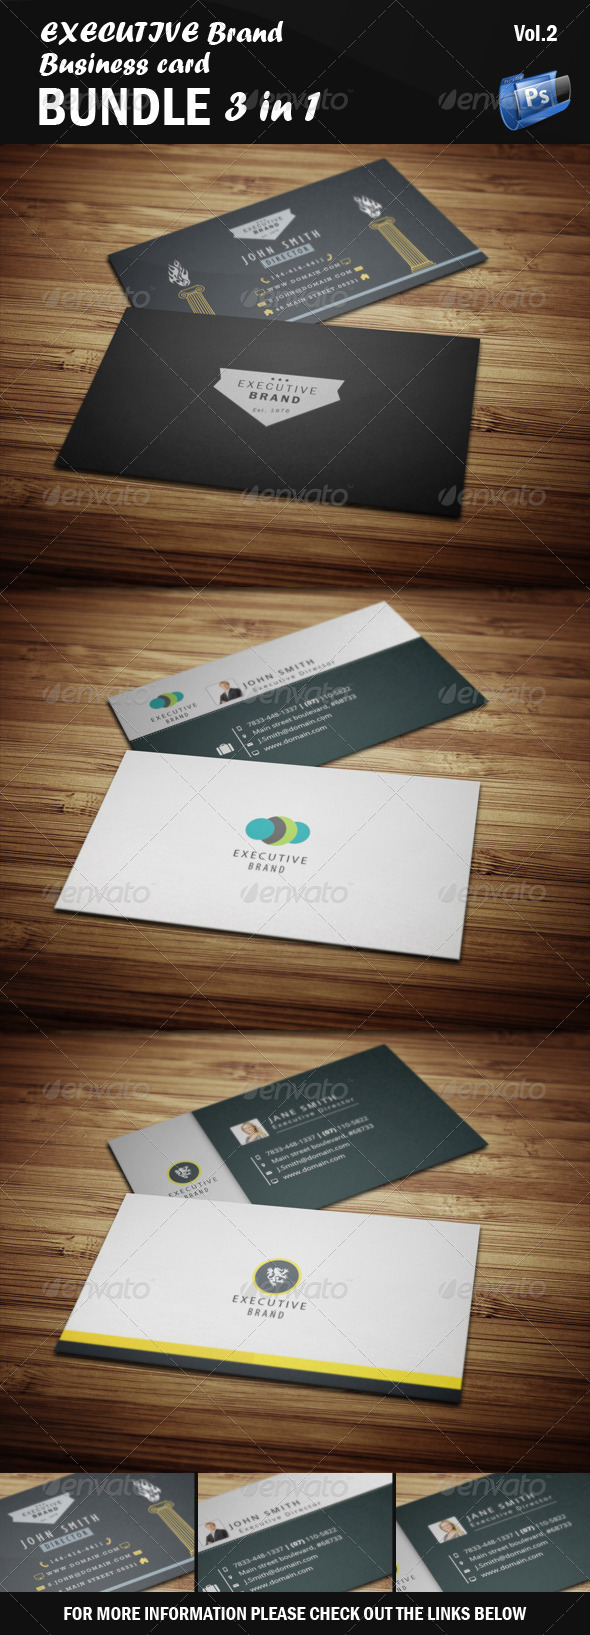 GraphicRiver Executive Business Card Bundle 3 in 1 [Vol.2] 5523356